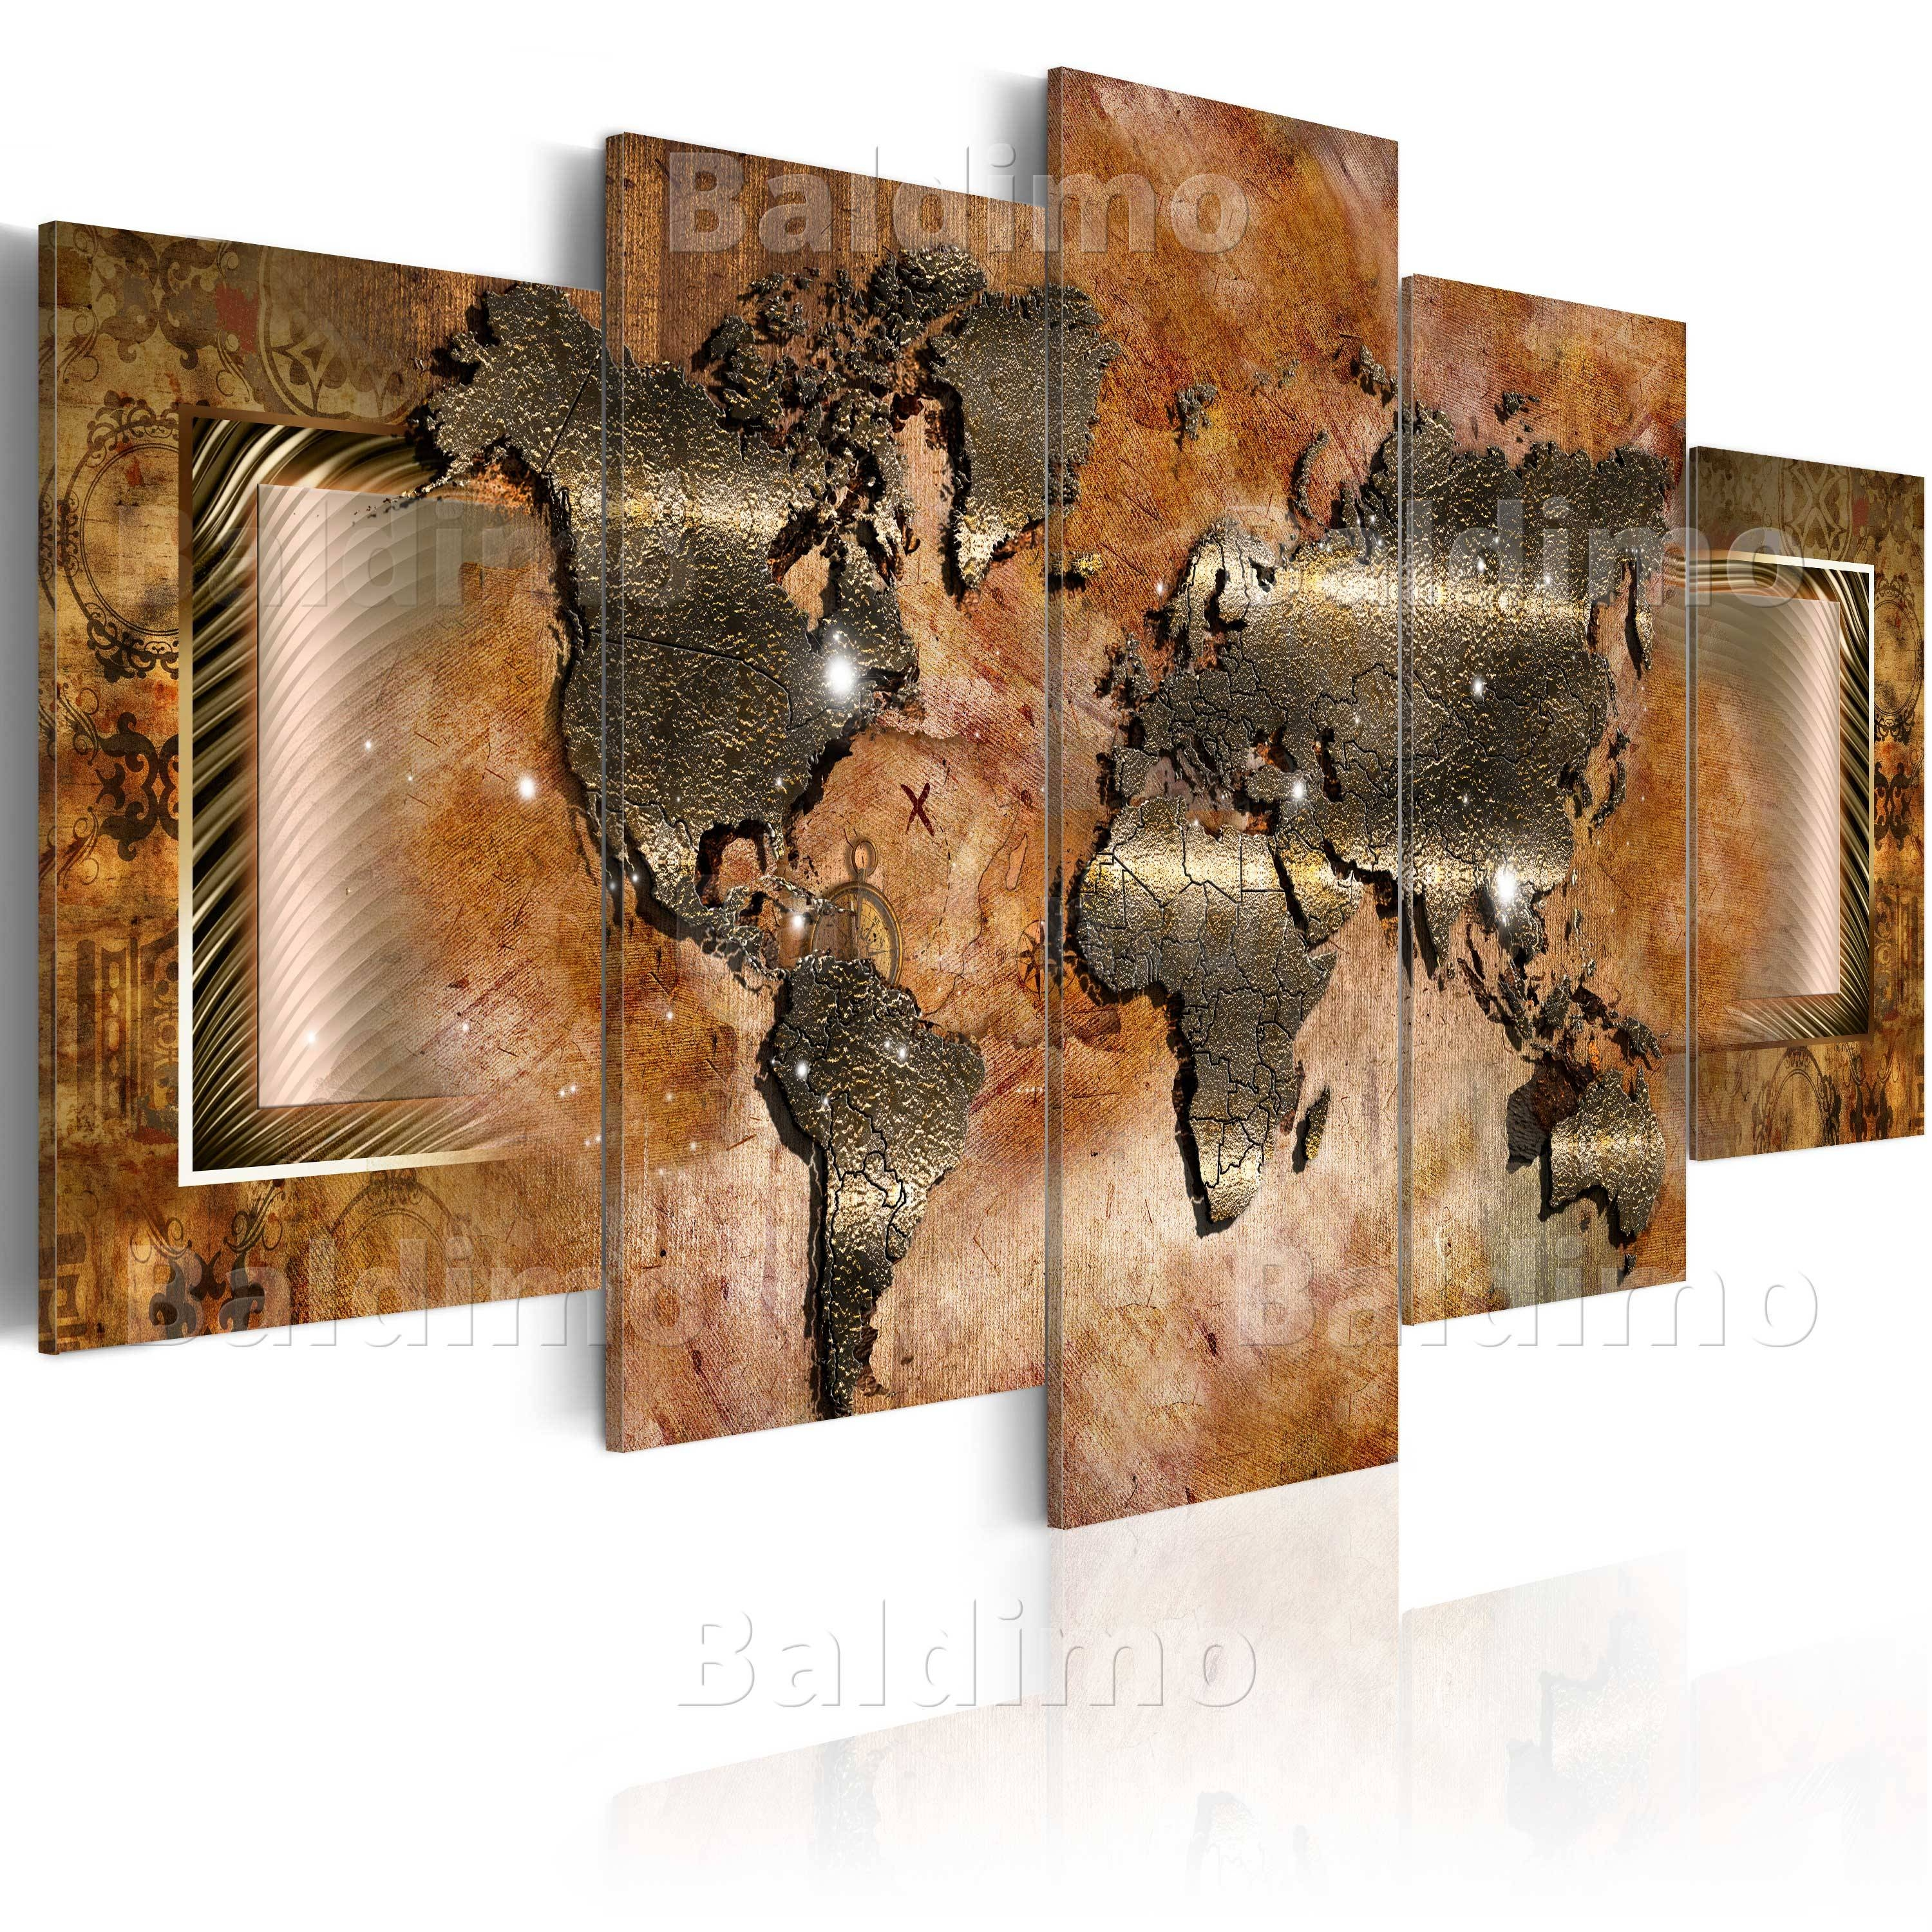 Cool Wall Design Large Canvas Wall Art Large Canvas Artwork Uk With Best And Newest Big Canvas Wall Art (View 7 of 20)